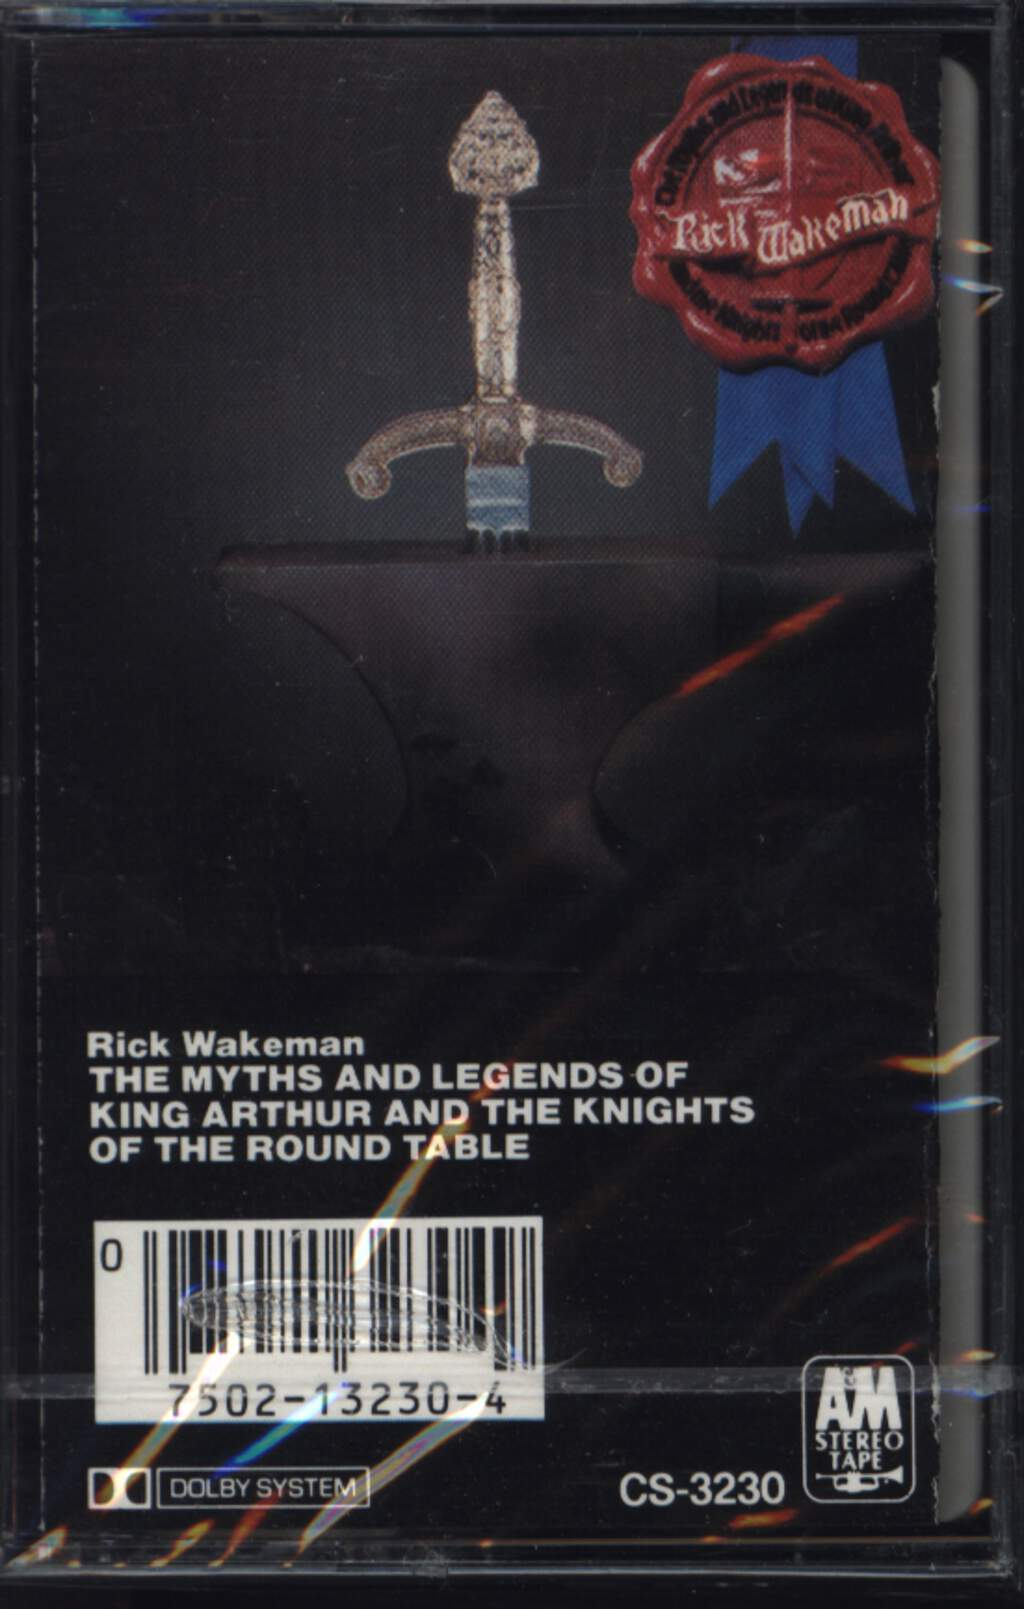 Rick Wakeman: The Myths And Legends Of King Arthur And The Knights Of The Round Table, Compact Cassette